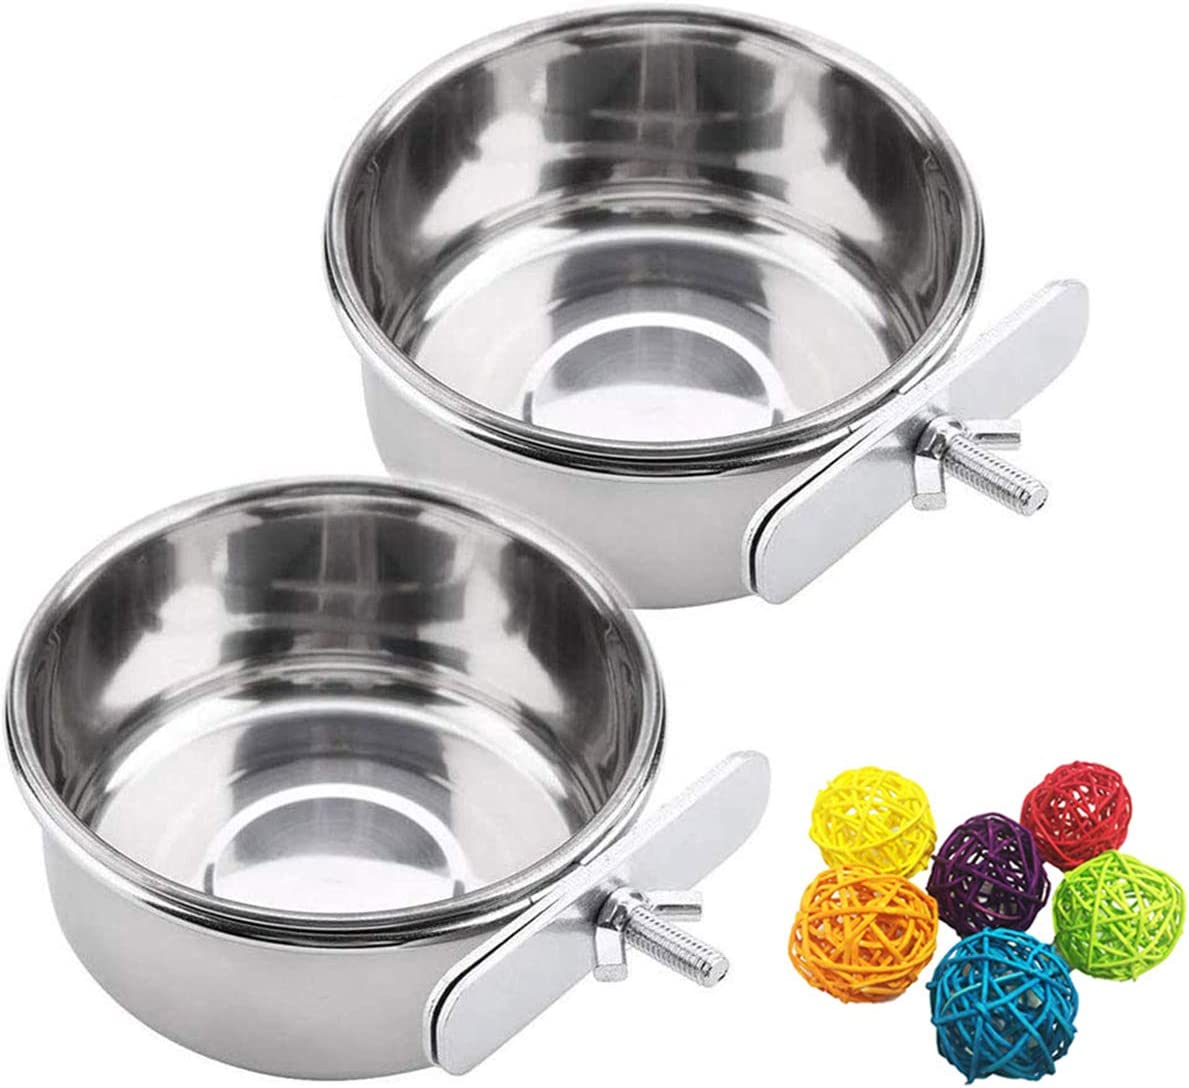 N/Y 2 Pack Bird Parrot Feeding Cups with Clamp, Food & Water Cage Hanging Bowl Stainless Steel Coop Cup Feeding Dish Feeder, with 2Pcs Rattan Balls Bird Chew Toy for Small Animal, Cockatiel and More